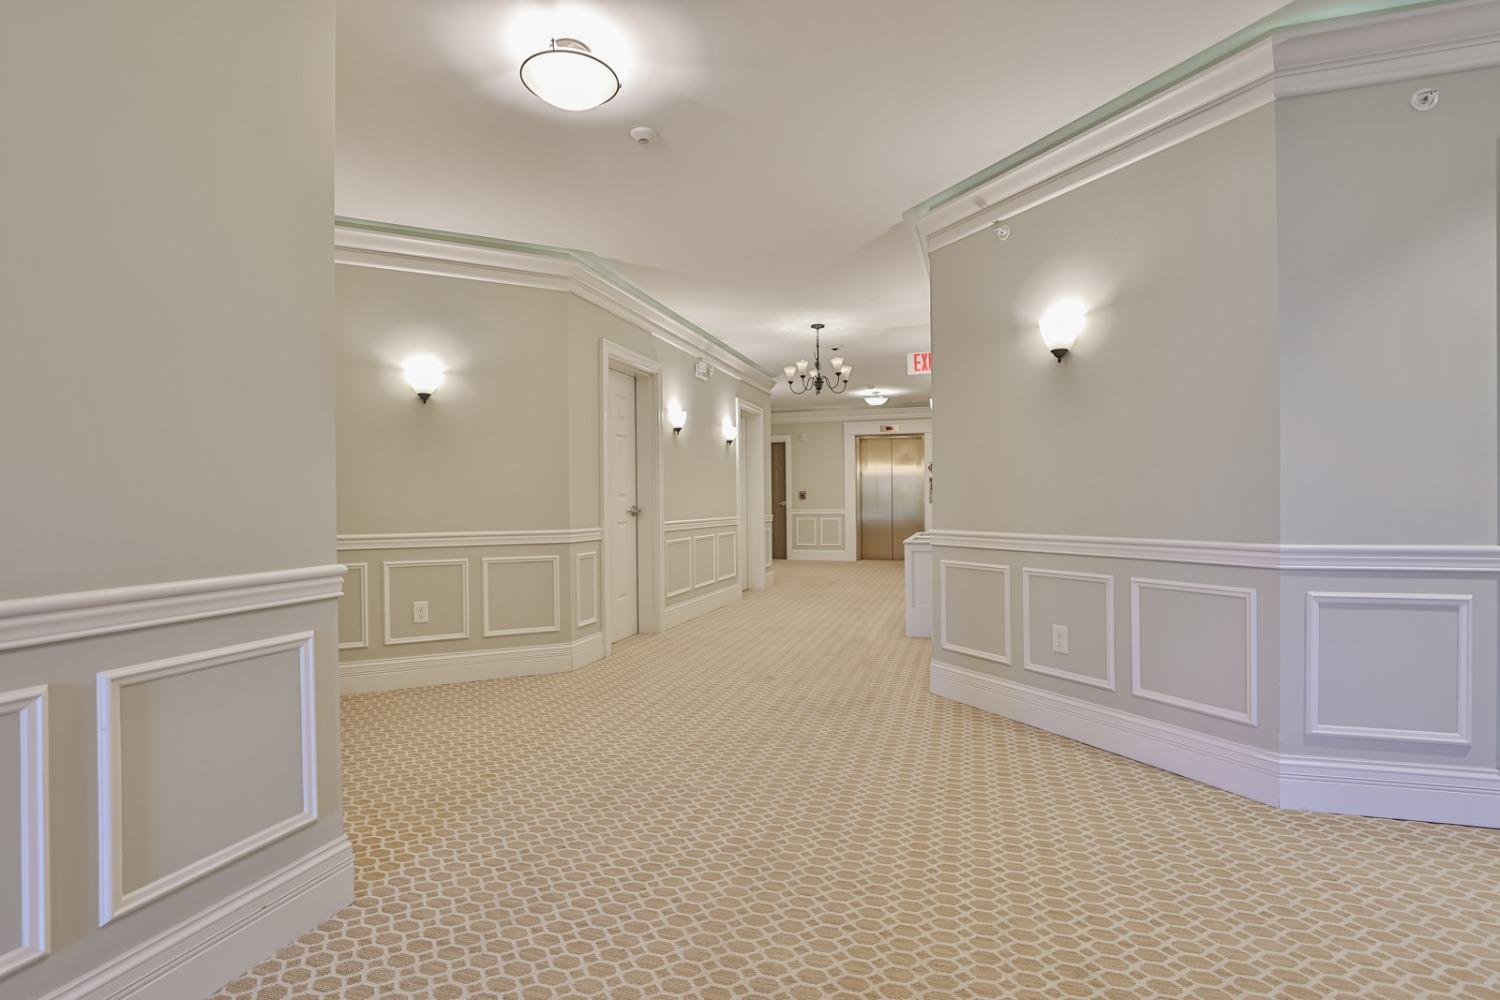 Photo 3 for 9506 Park Manor Blvd #102 Blue Ash, OH 45242